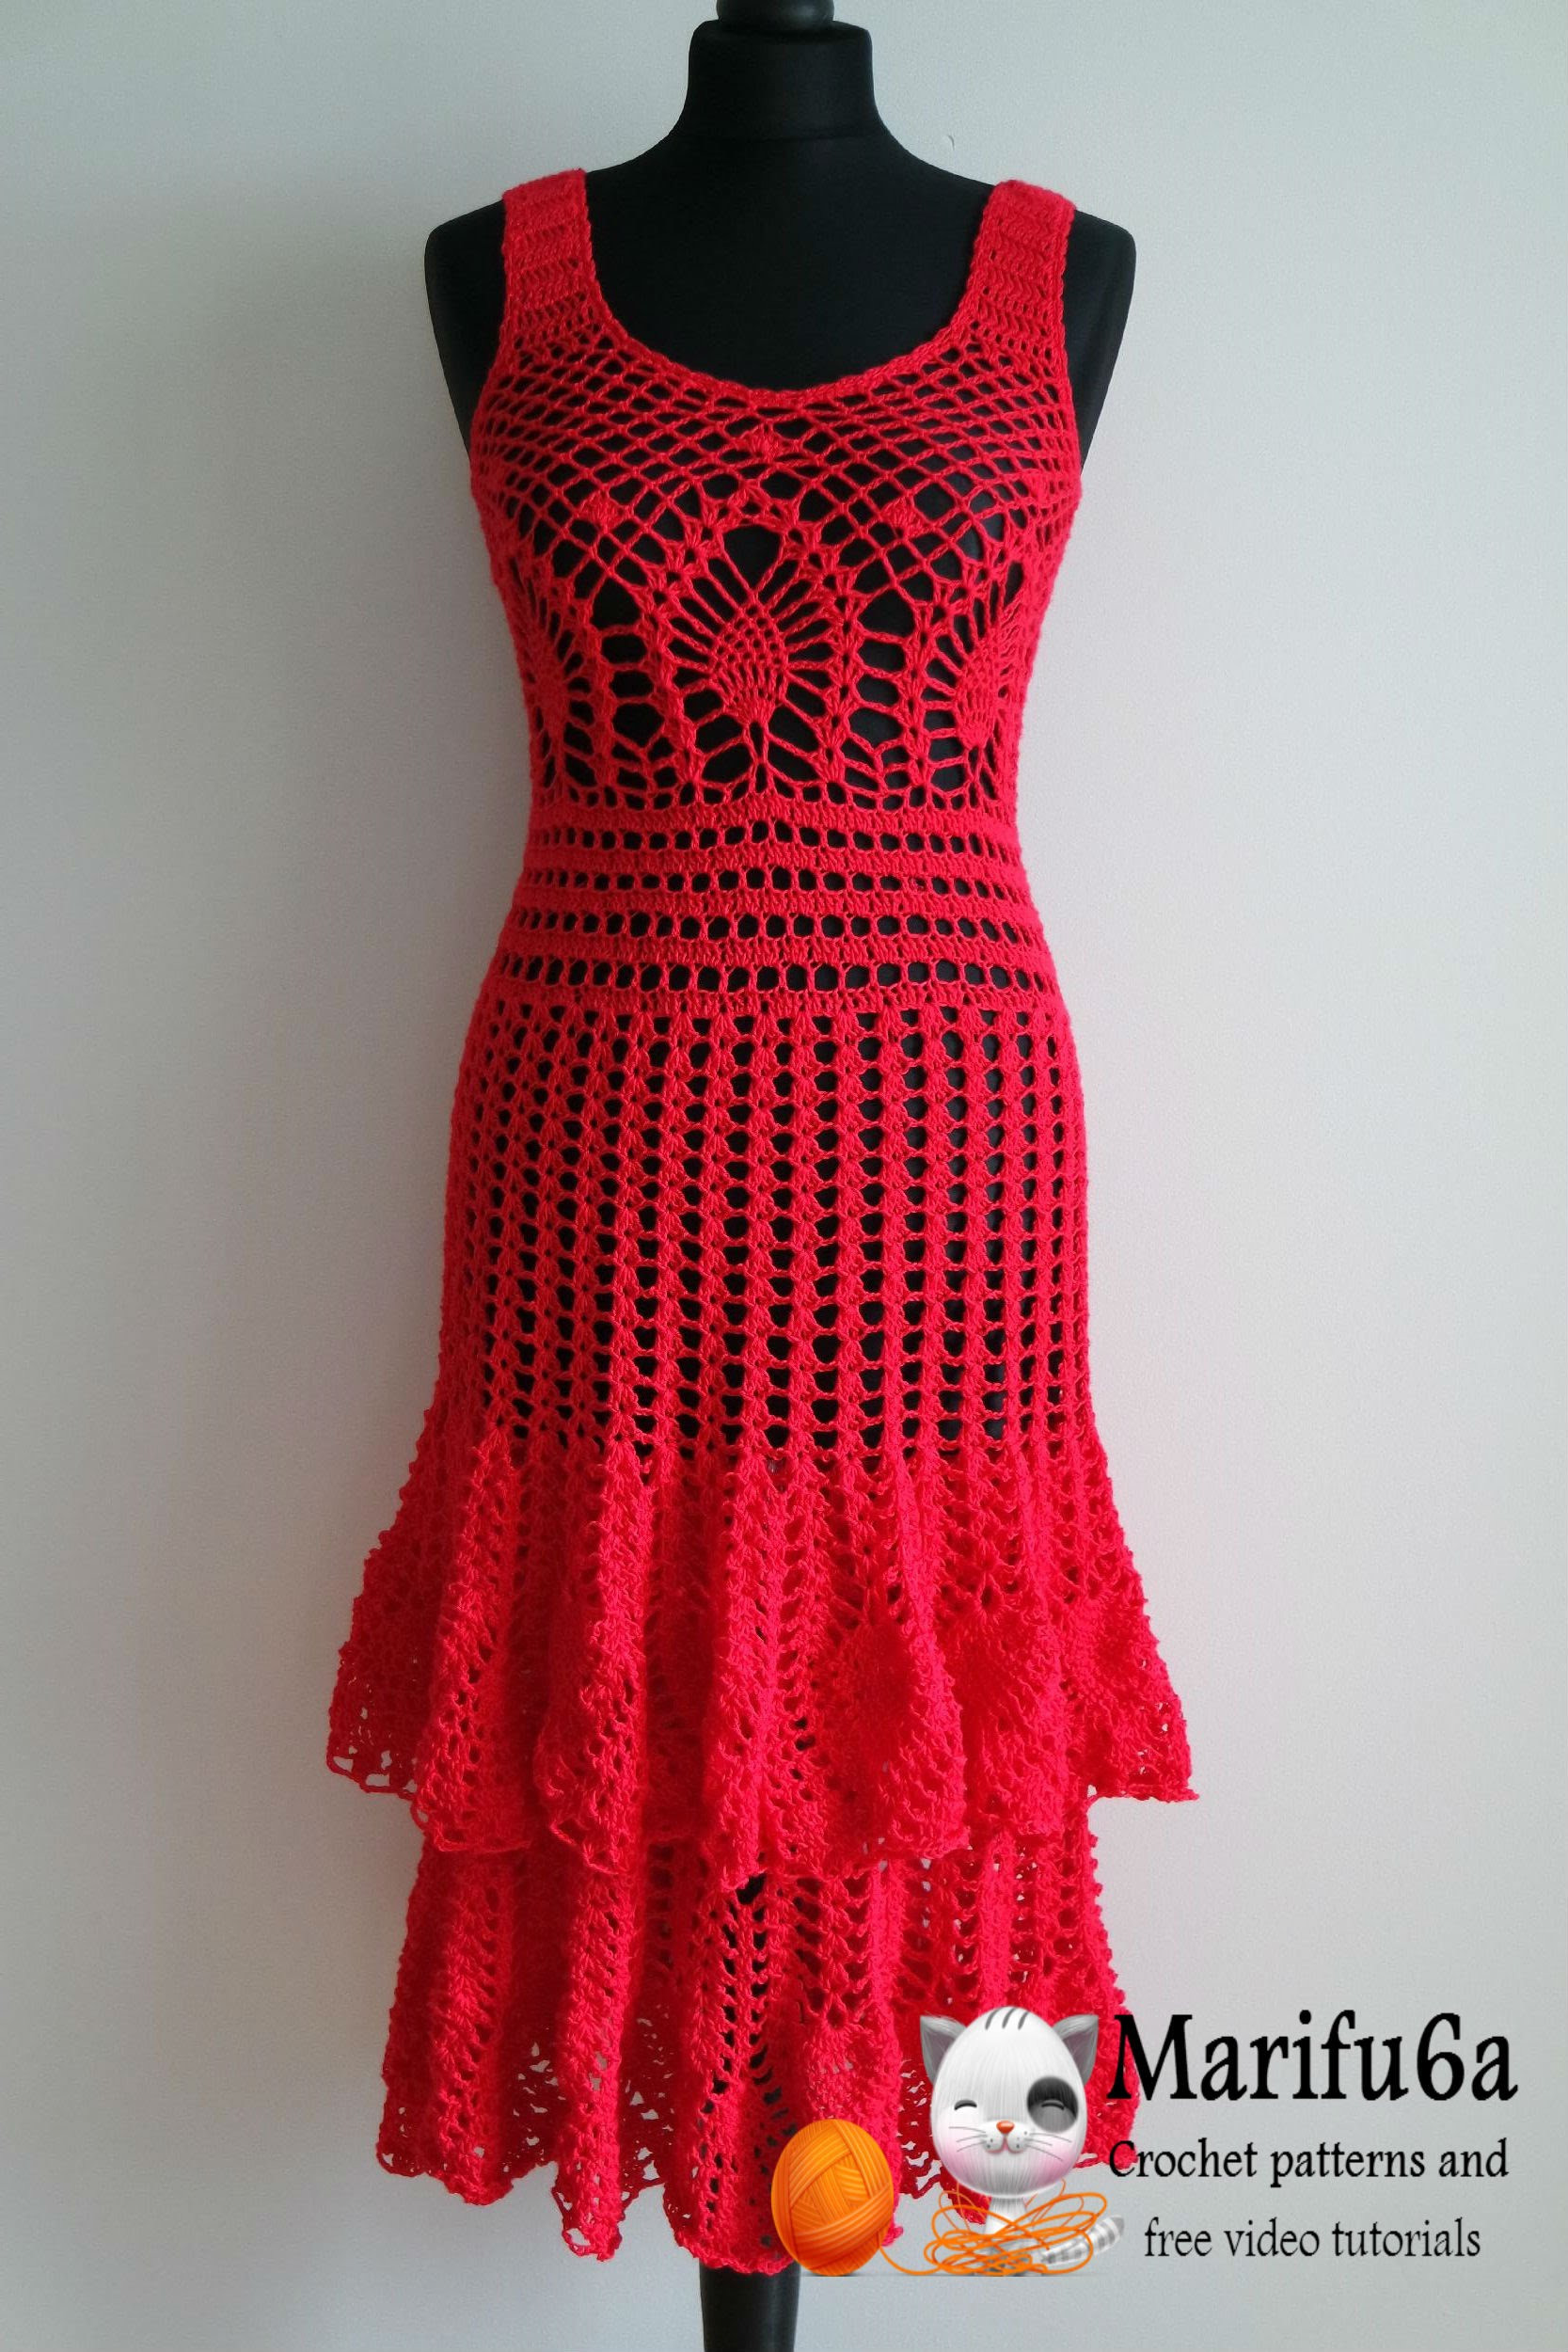 Unique Crocheted Dress Patterns Just In Time for Christmas Crochet Dress Of Awesome 50 Pictures Crochet Dress